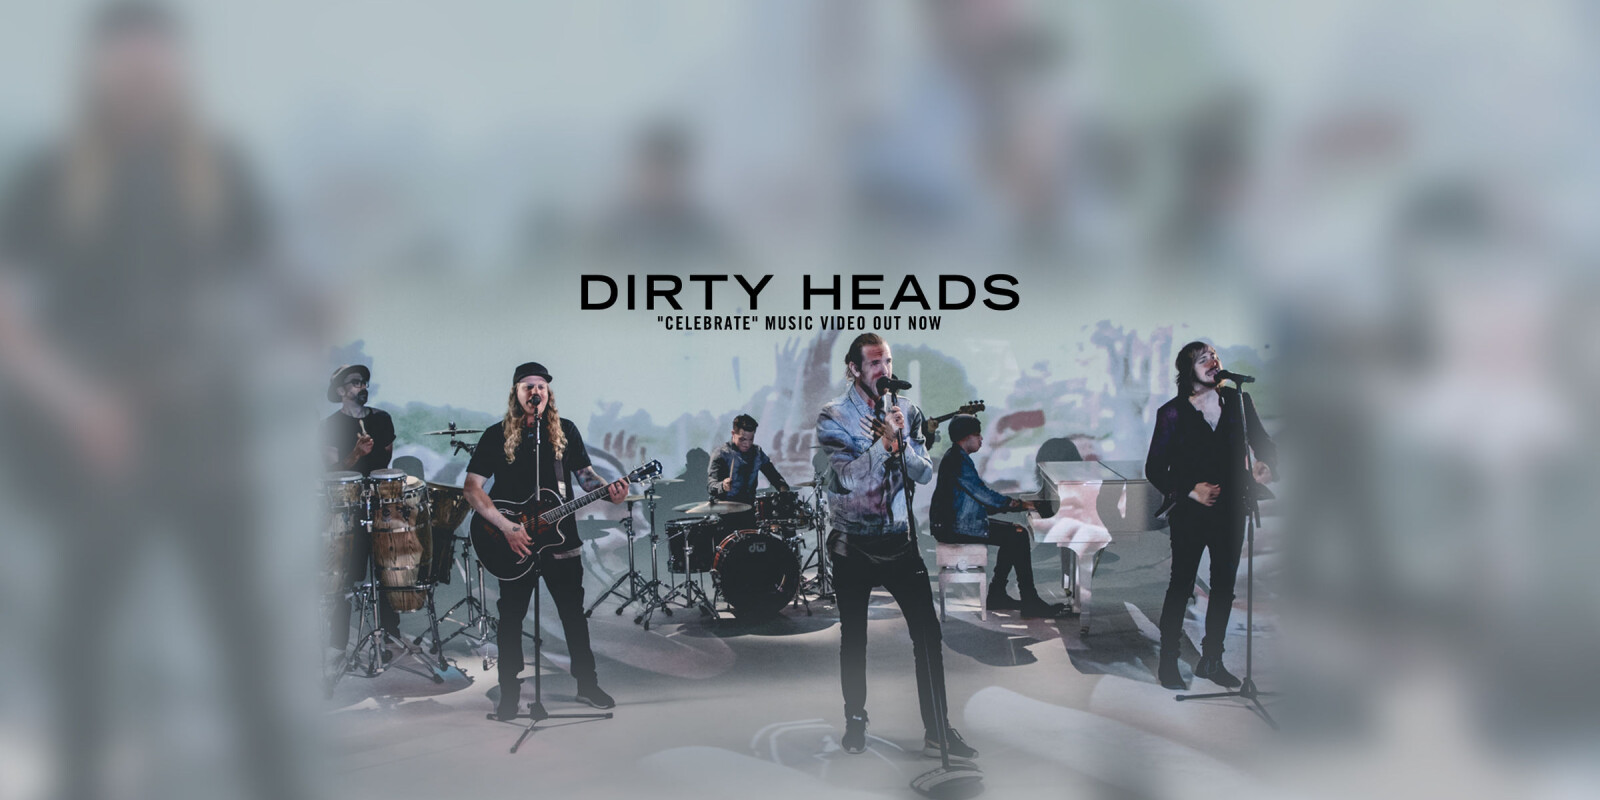 Dirty heads gifs, boomerang videos and headers for celebrate video